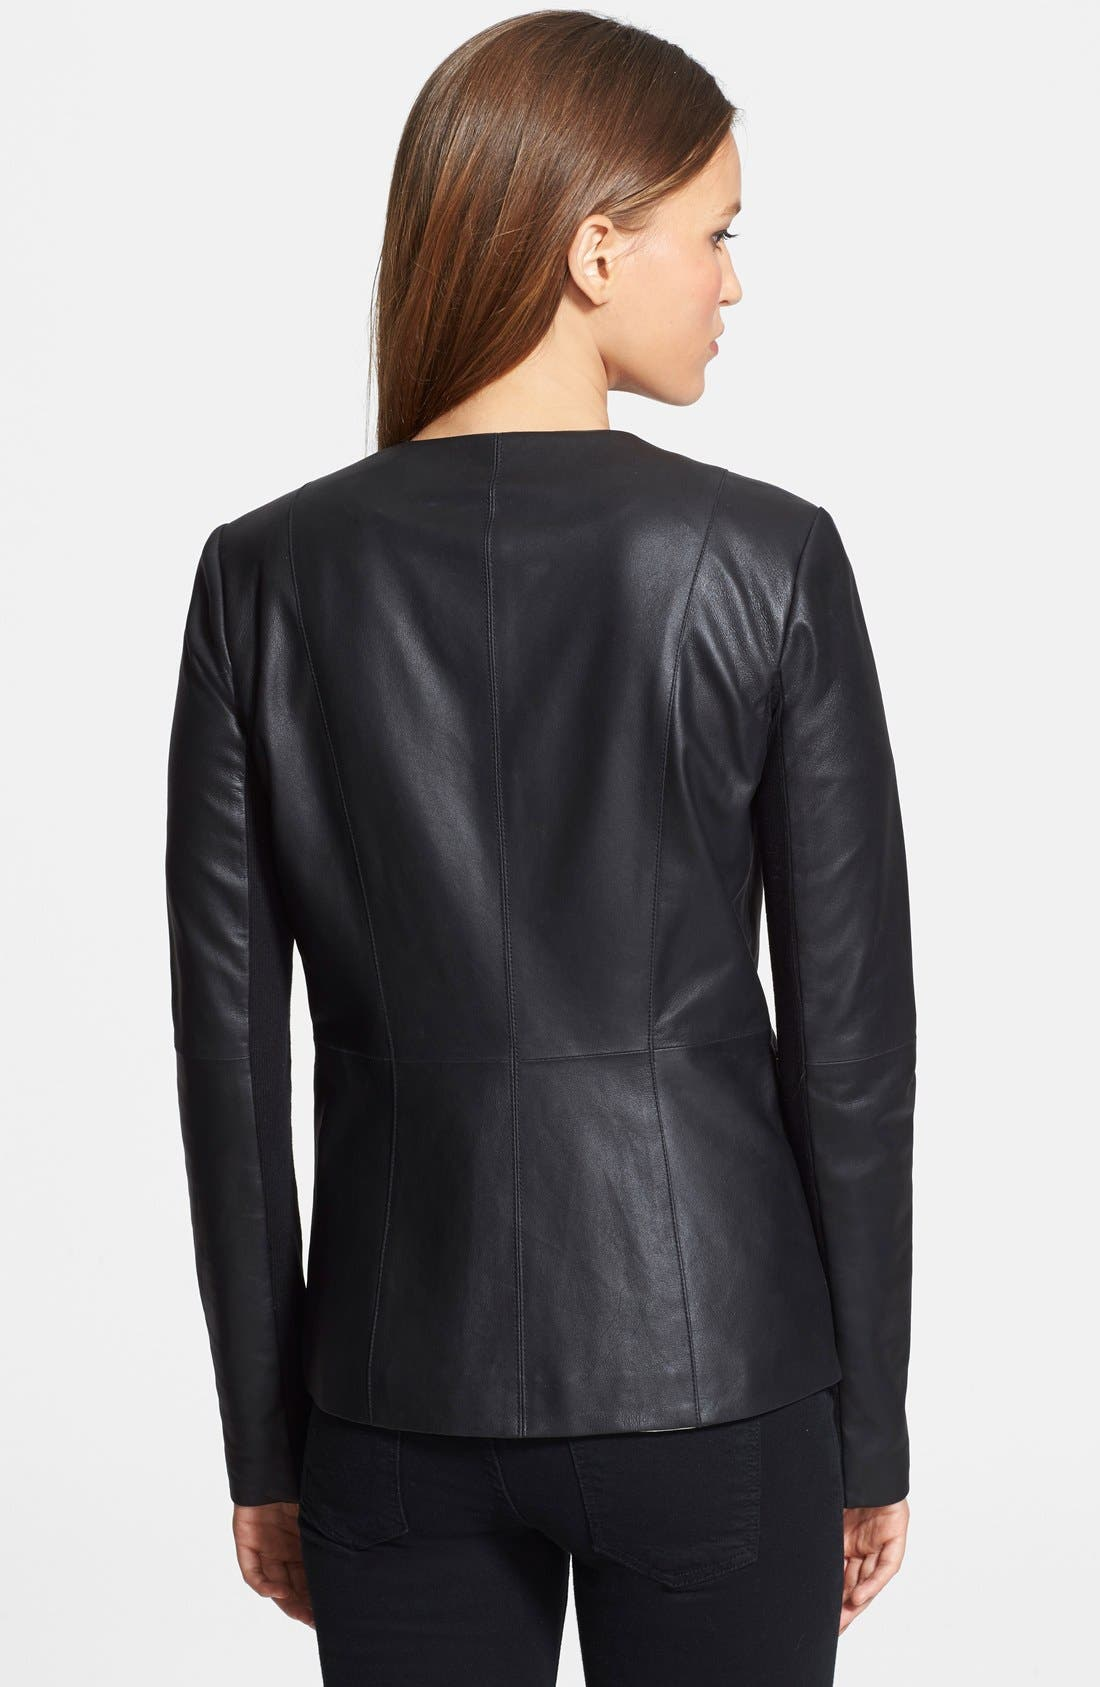 VEDA, 'Aires' Asymmetrical Zip Leather Jacket, Alternate thumbnail 3, color, 001